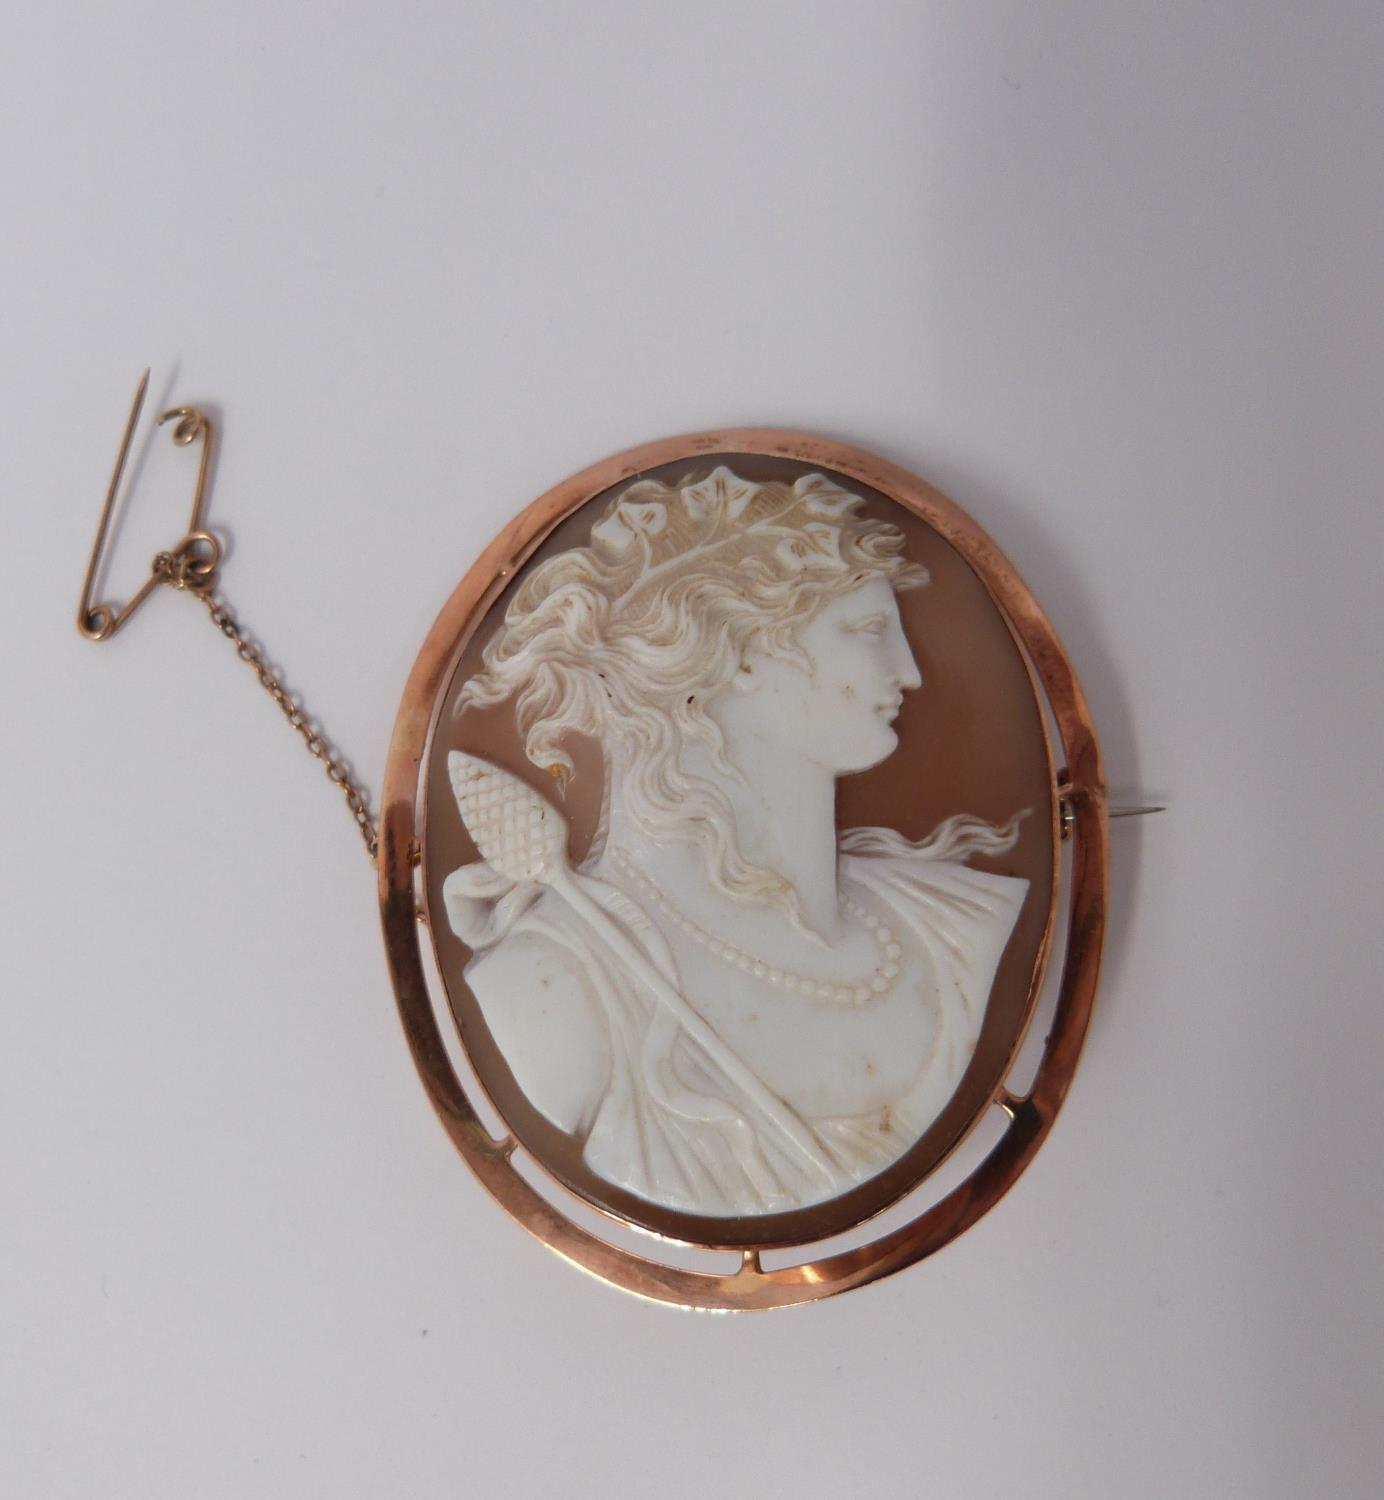 A 9ct Rose gold shell cameo of Dionysis side profile, makers mark AW, 9ct gold mark, he is - Image 4 of 8